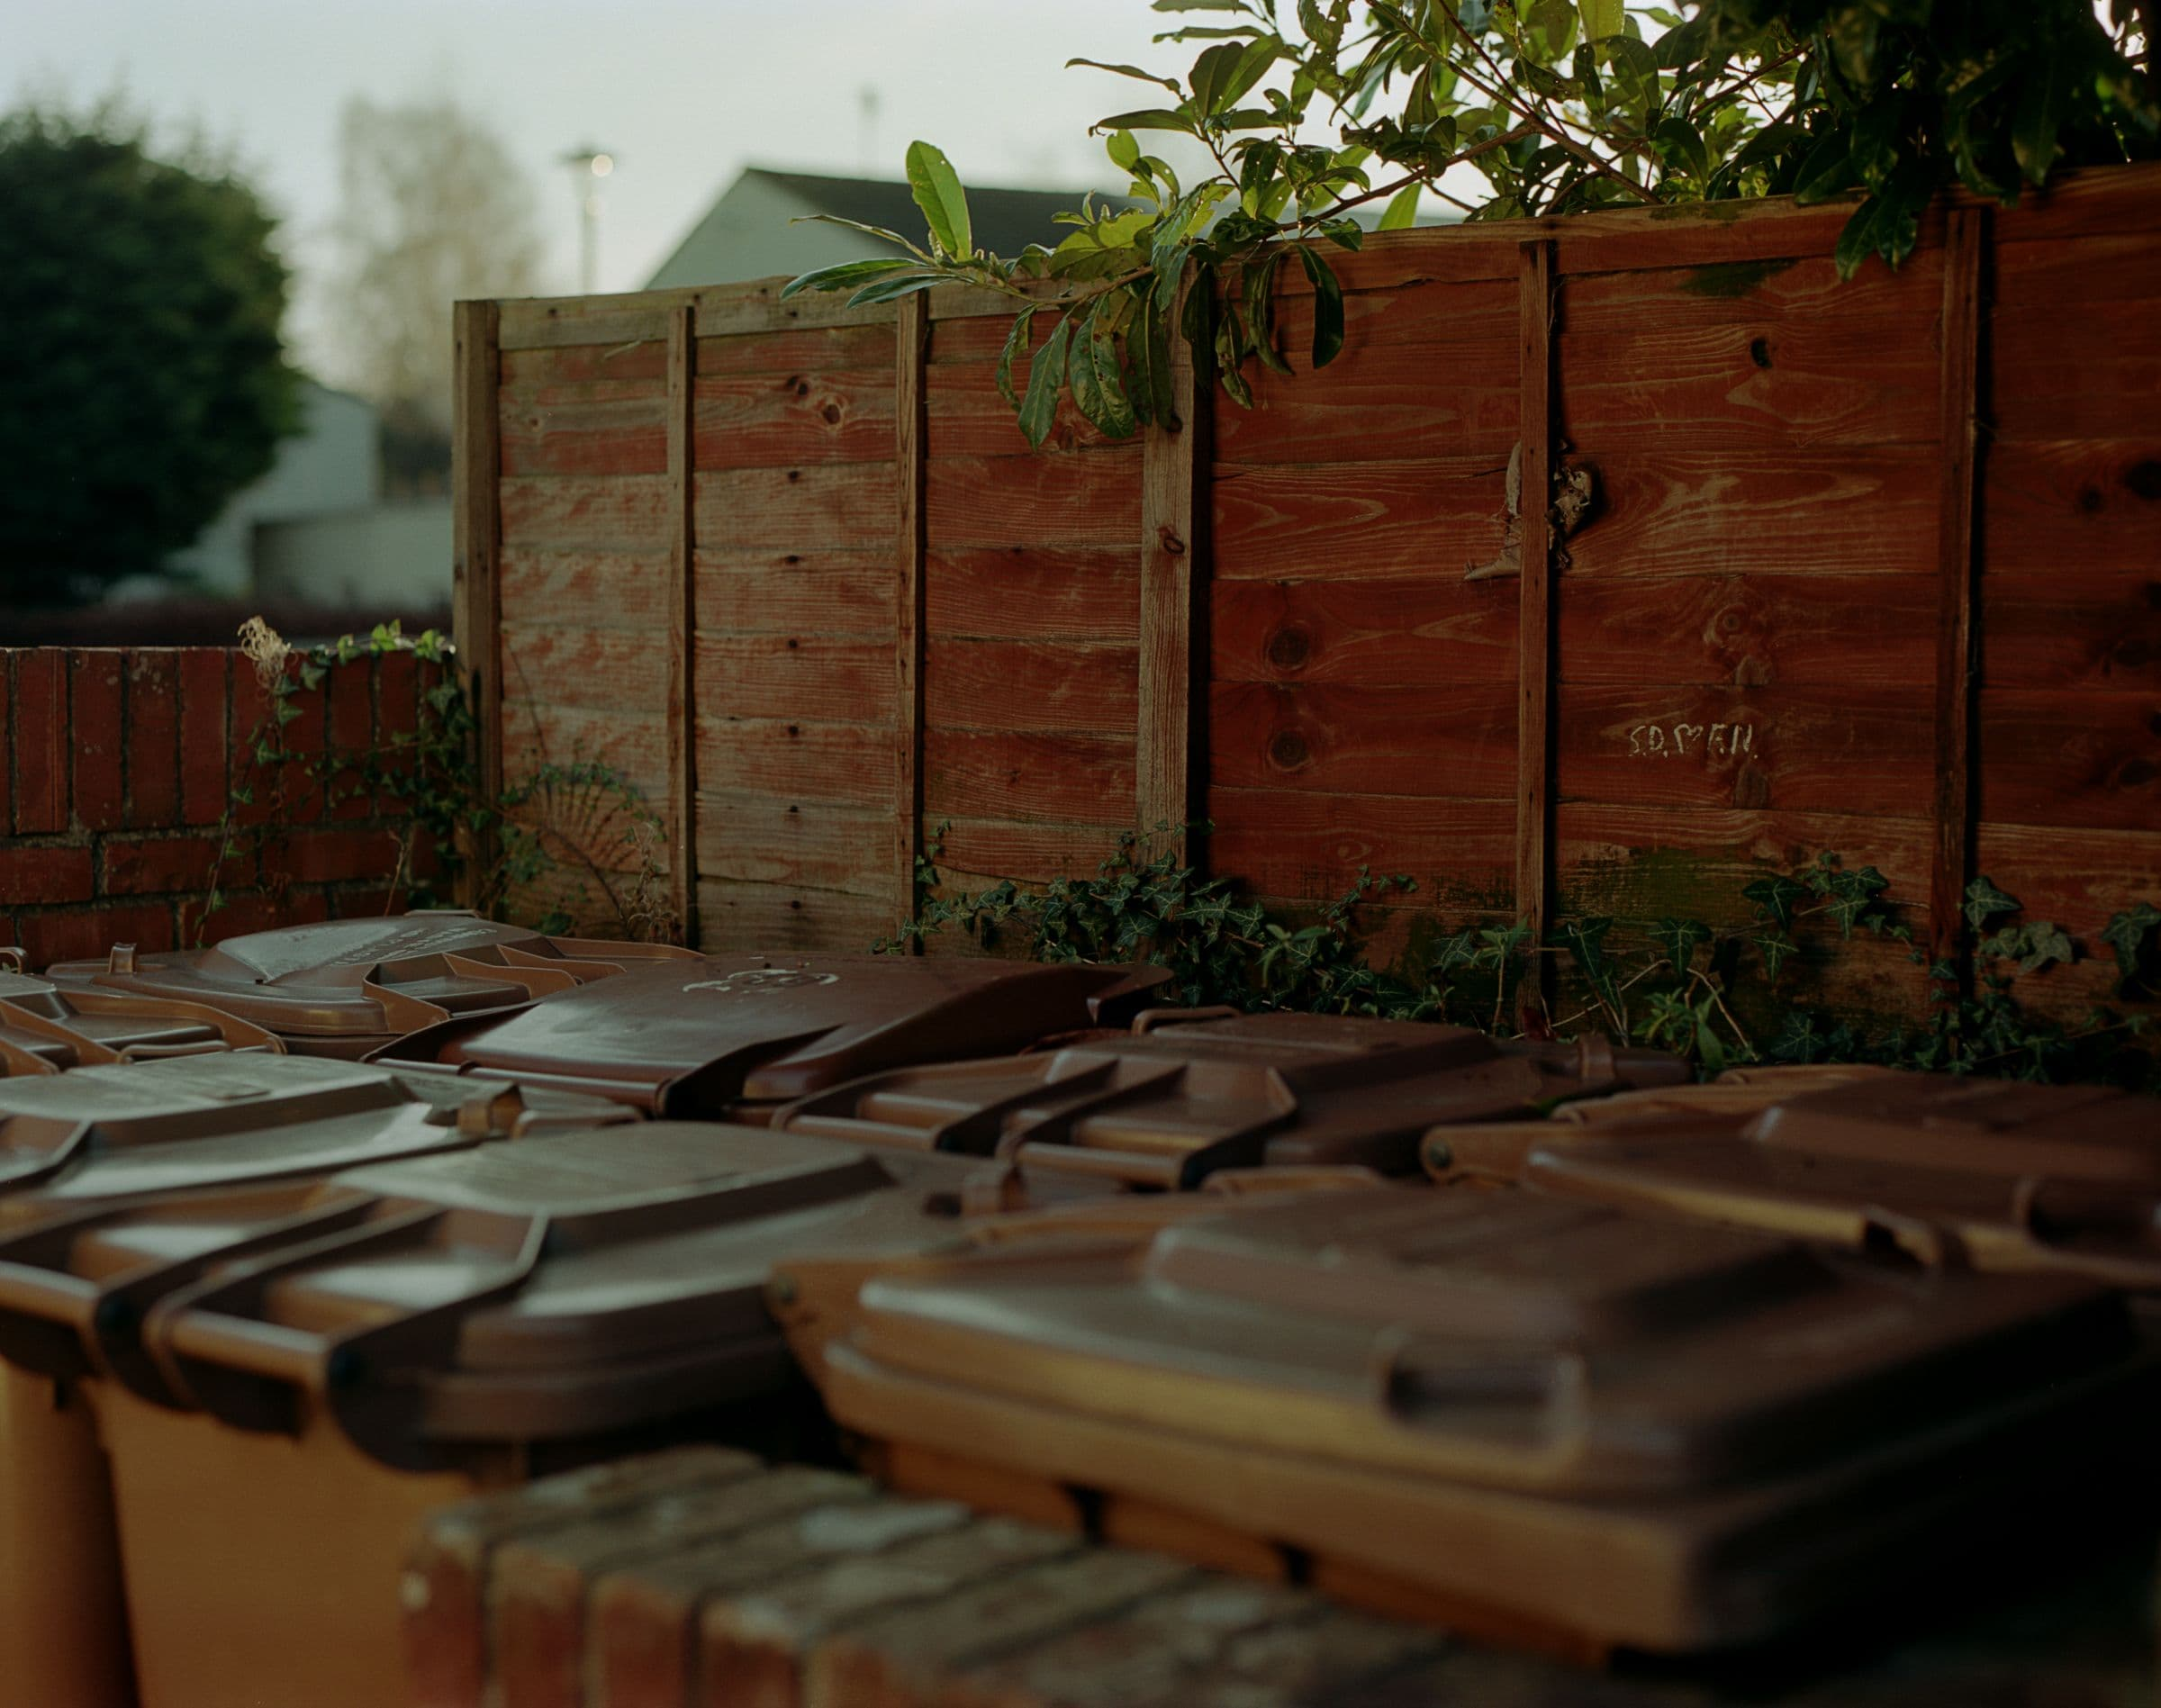 Brown wheelie bins tightly packed into a walled area in a suburban neighbourhood